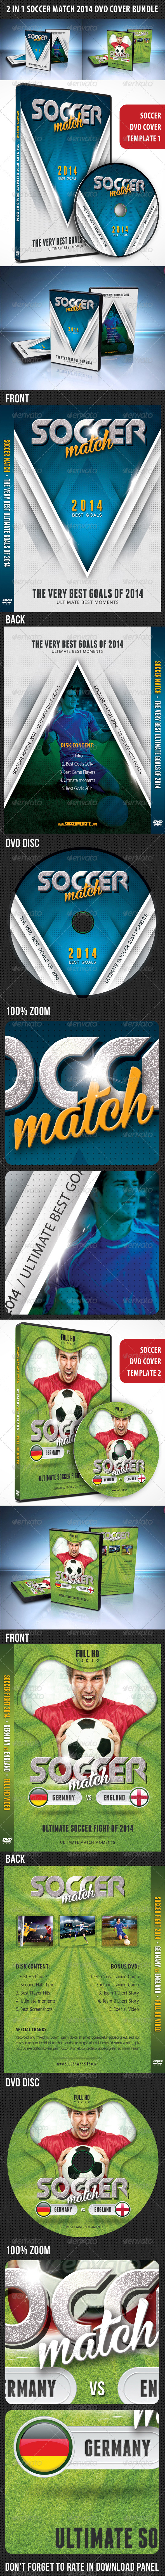 GraphicRiver 2 in 1 Soccer Match 2014 DVD Cover Bundle 7915718